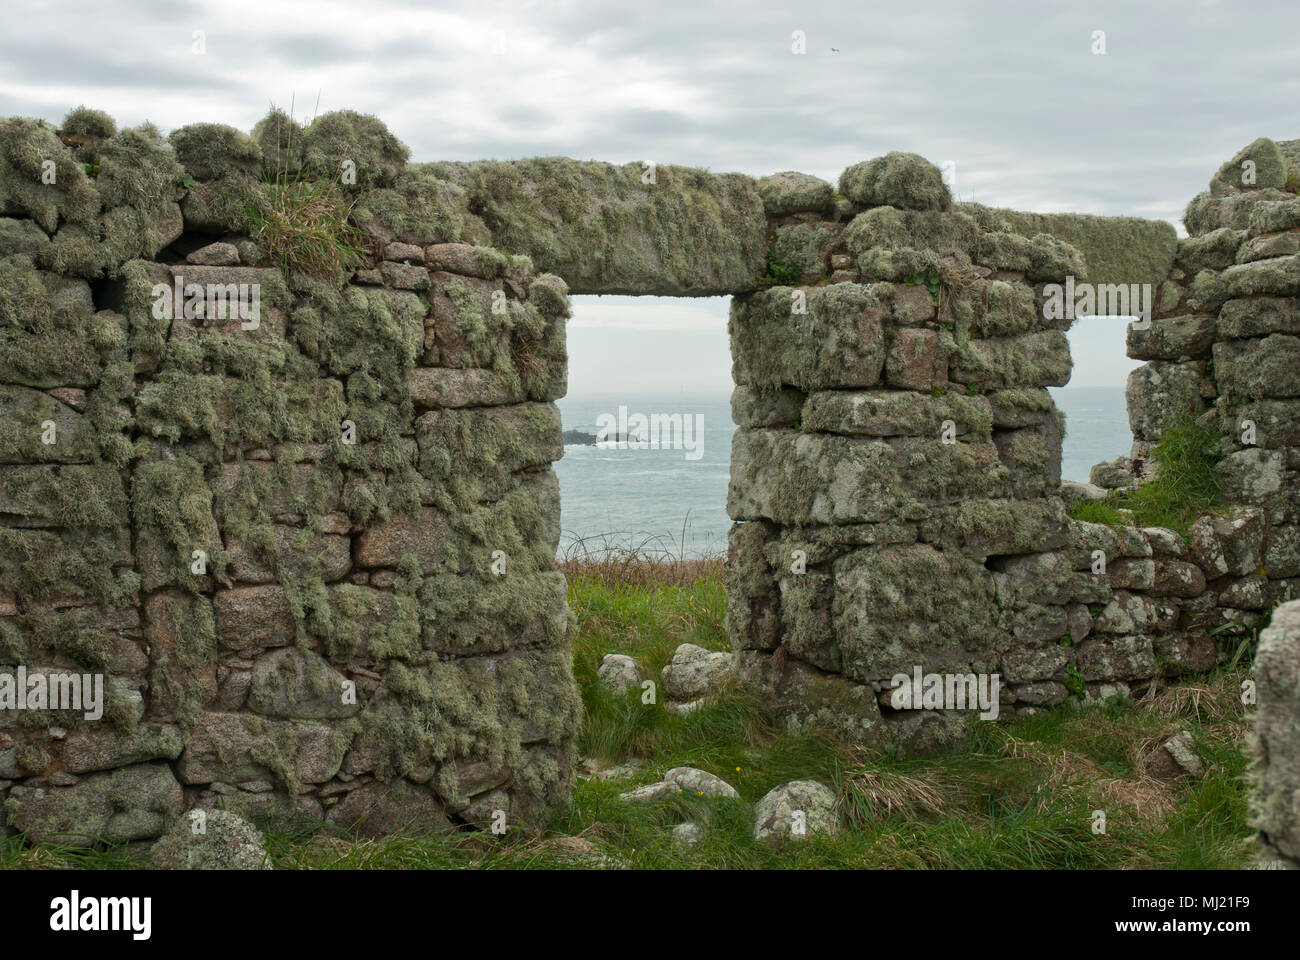 Remnants of a house covered in lichen on the now uninhabited Island of Samson, the sea can be seen through the door and window. isles of Scilly. - Stock Image